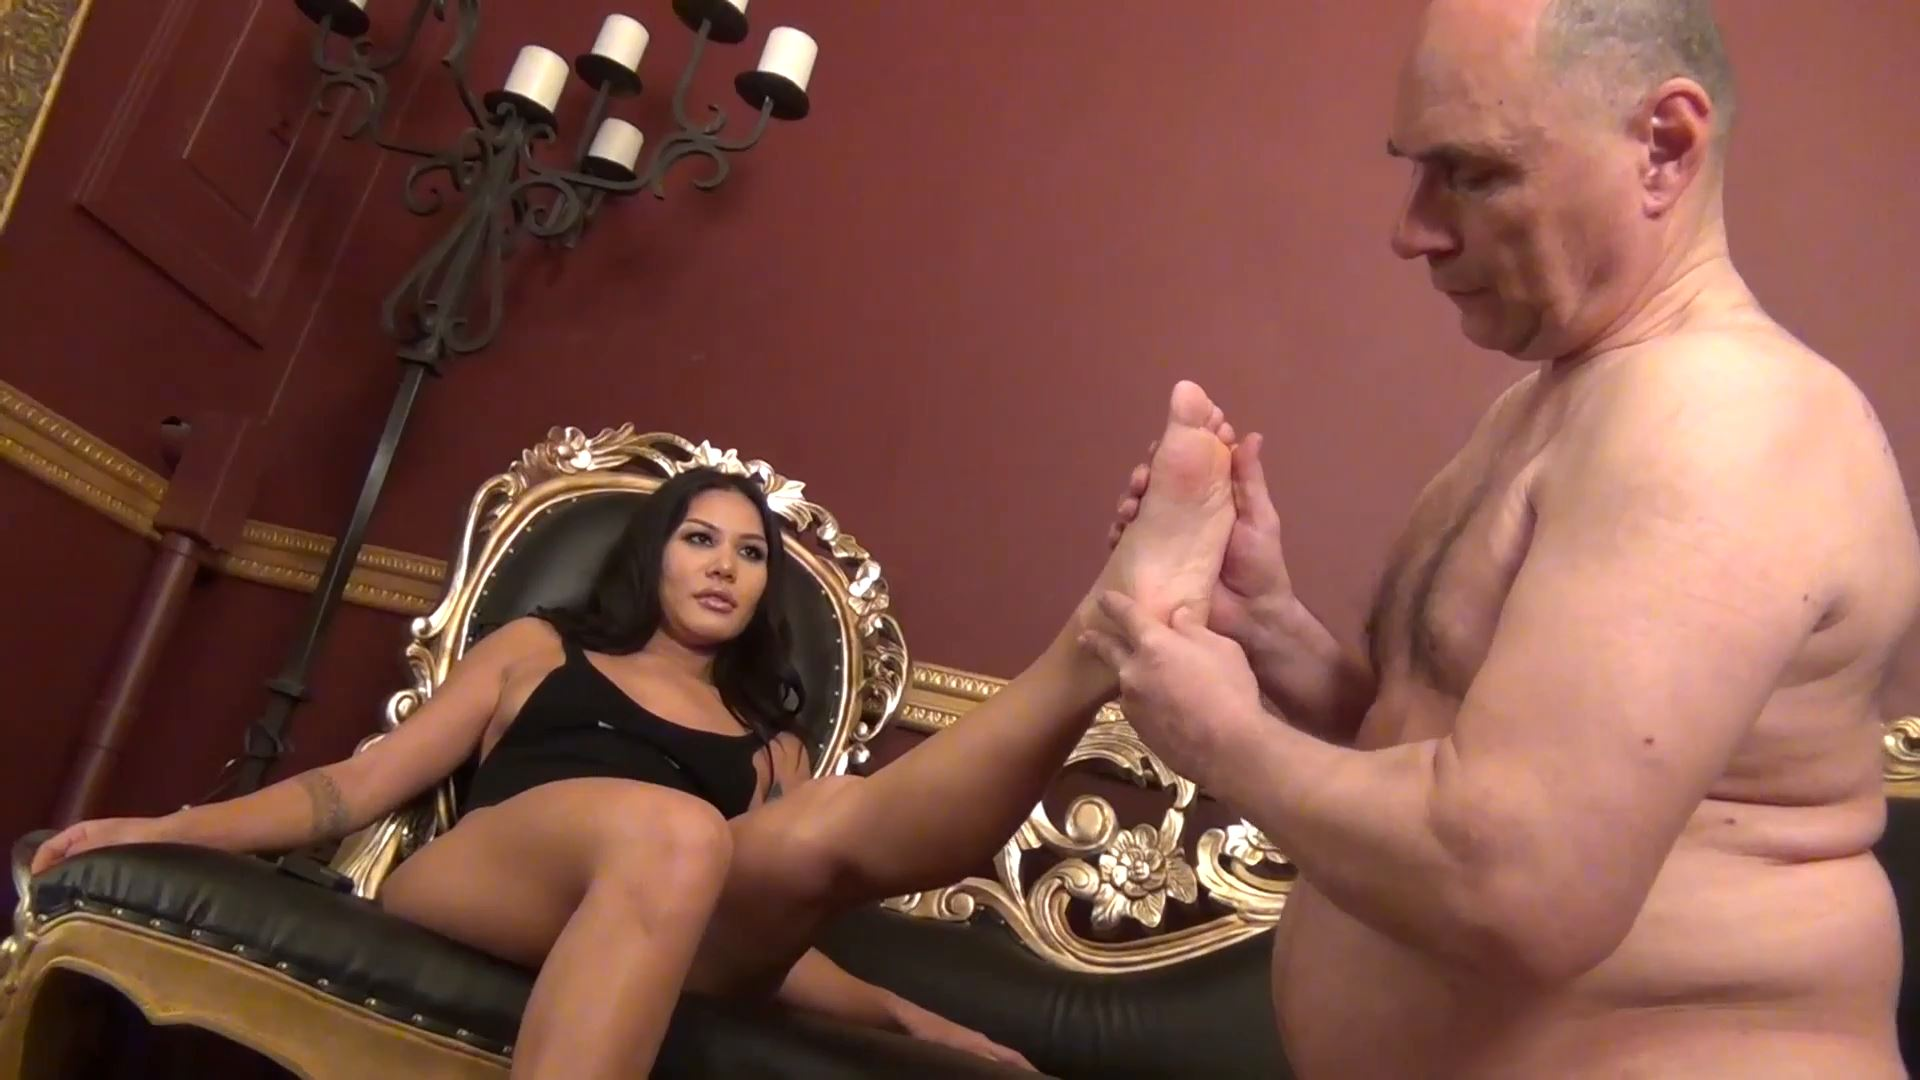 Goddess Mena In Scene: SWEAT LICKING LOSER! - ASIAN MEAN GIRLS - FULL HD/1080p/MP4